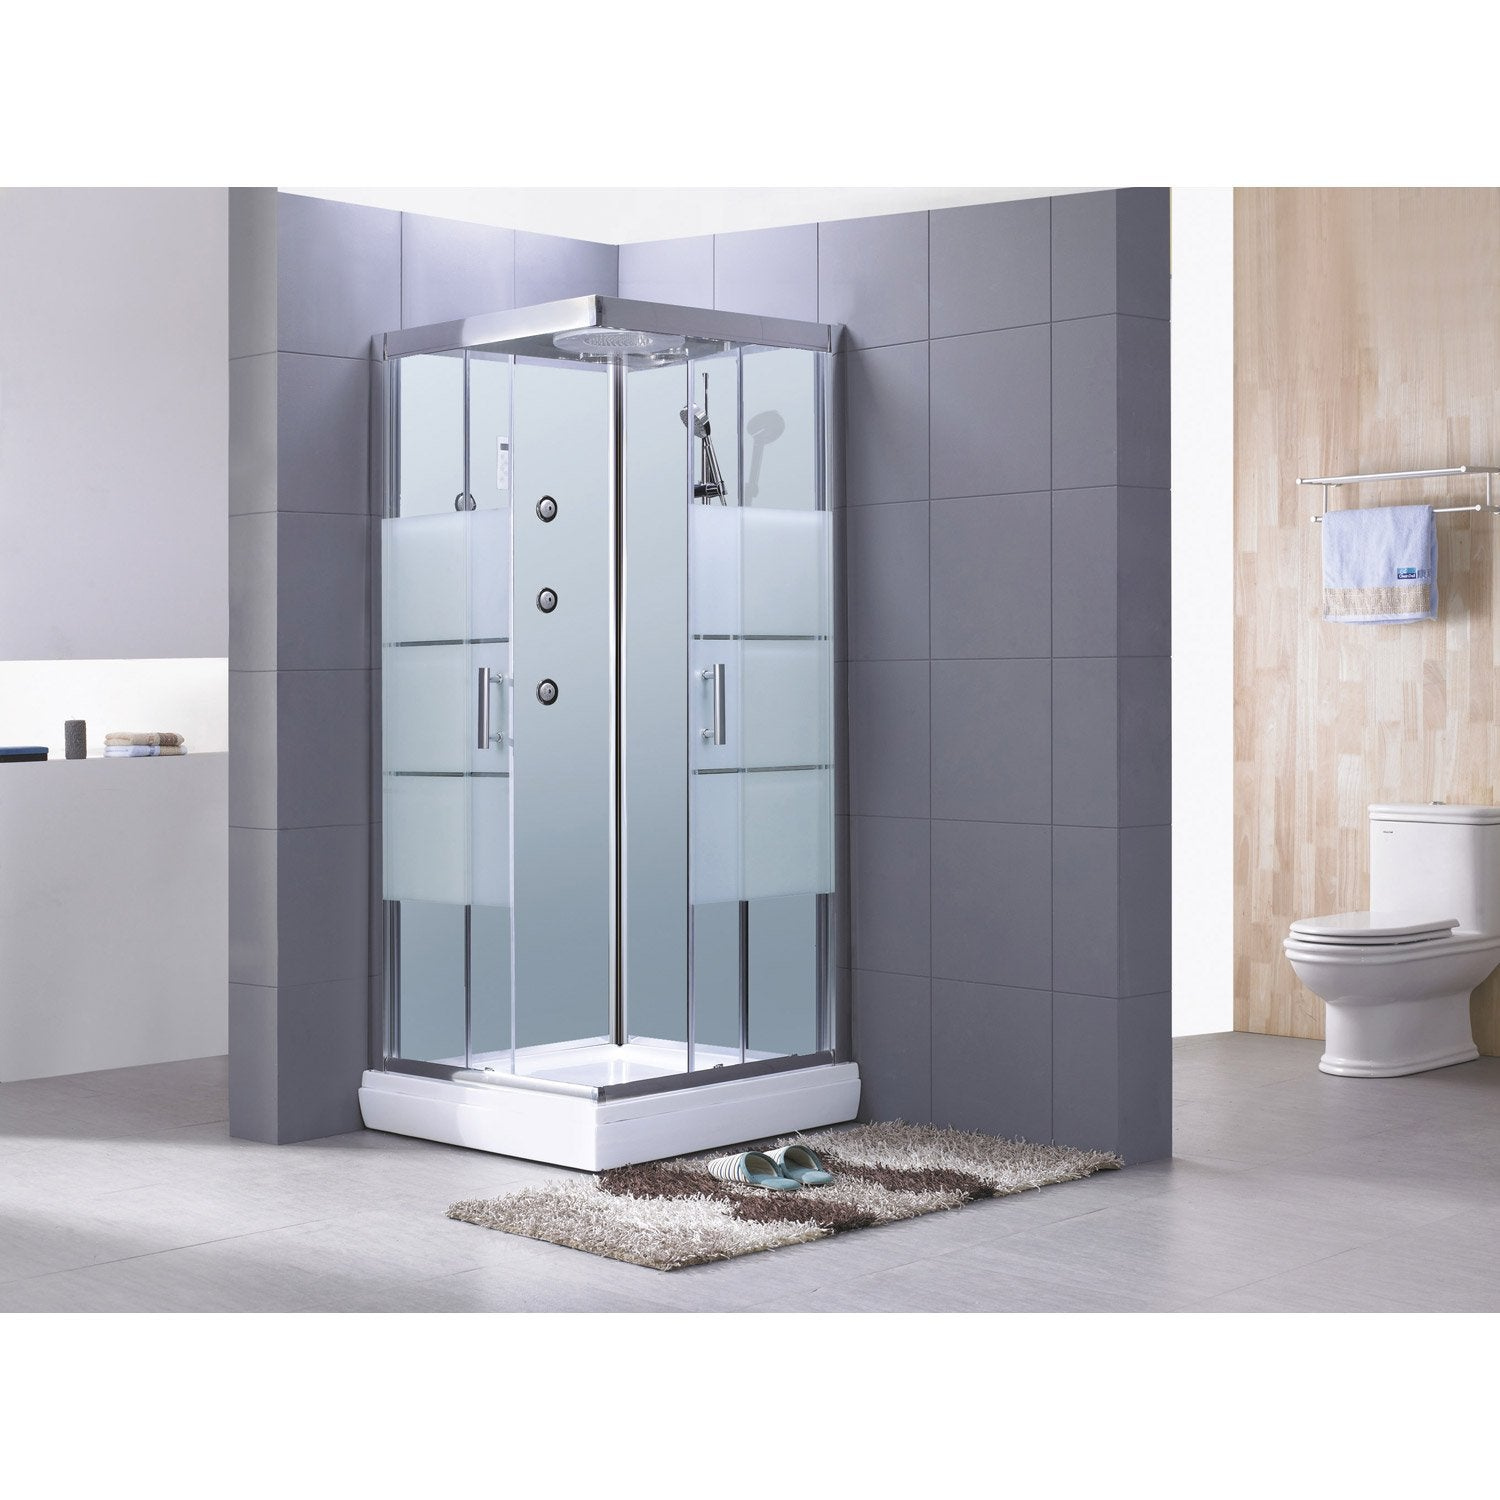 Cabine de douche carr 80x80 cm optima2 blanche leroy for Carrelage 80x80 leroy merlin